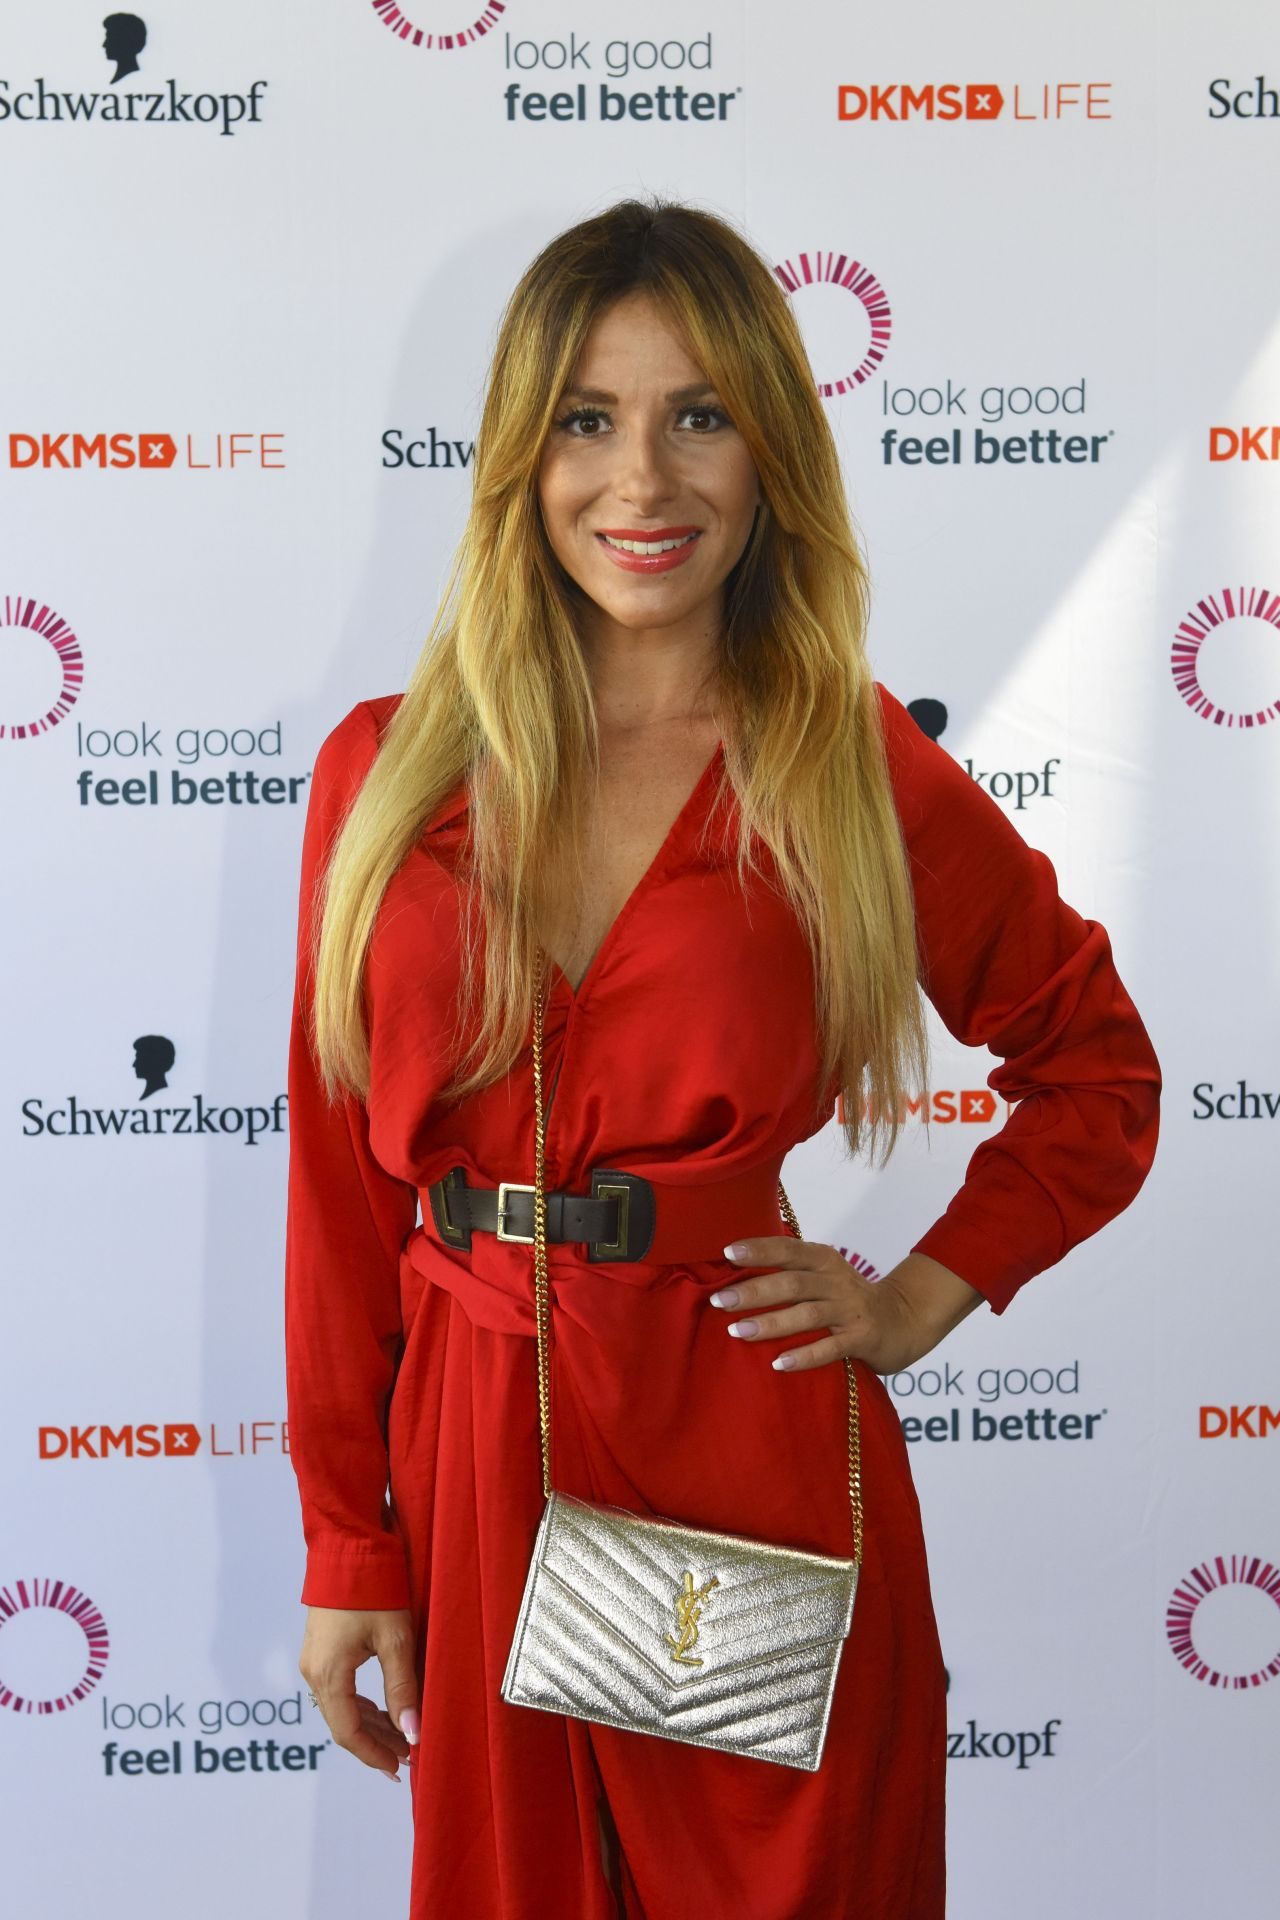 Gulcan kamps dkms life charity ladies lunch in dusseldorf germany